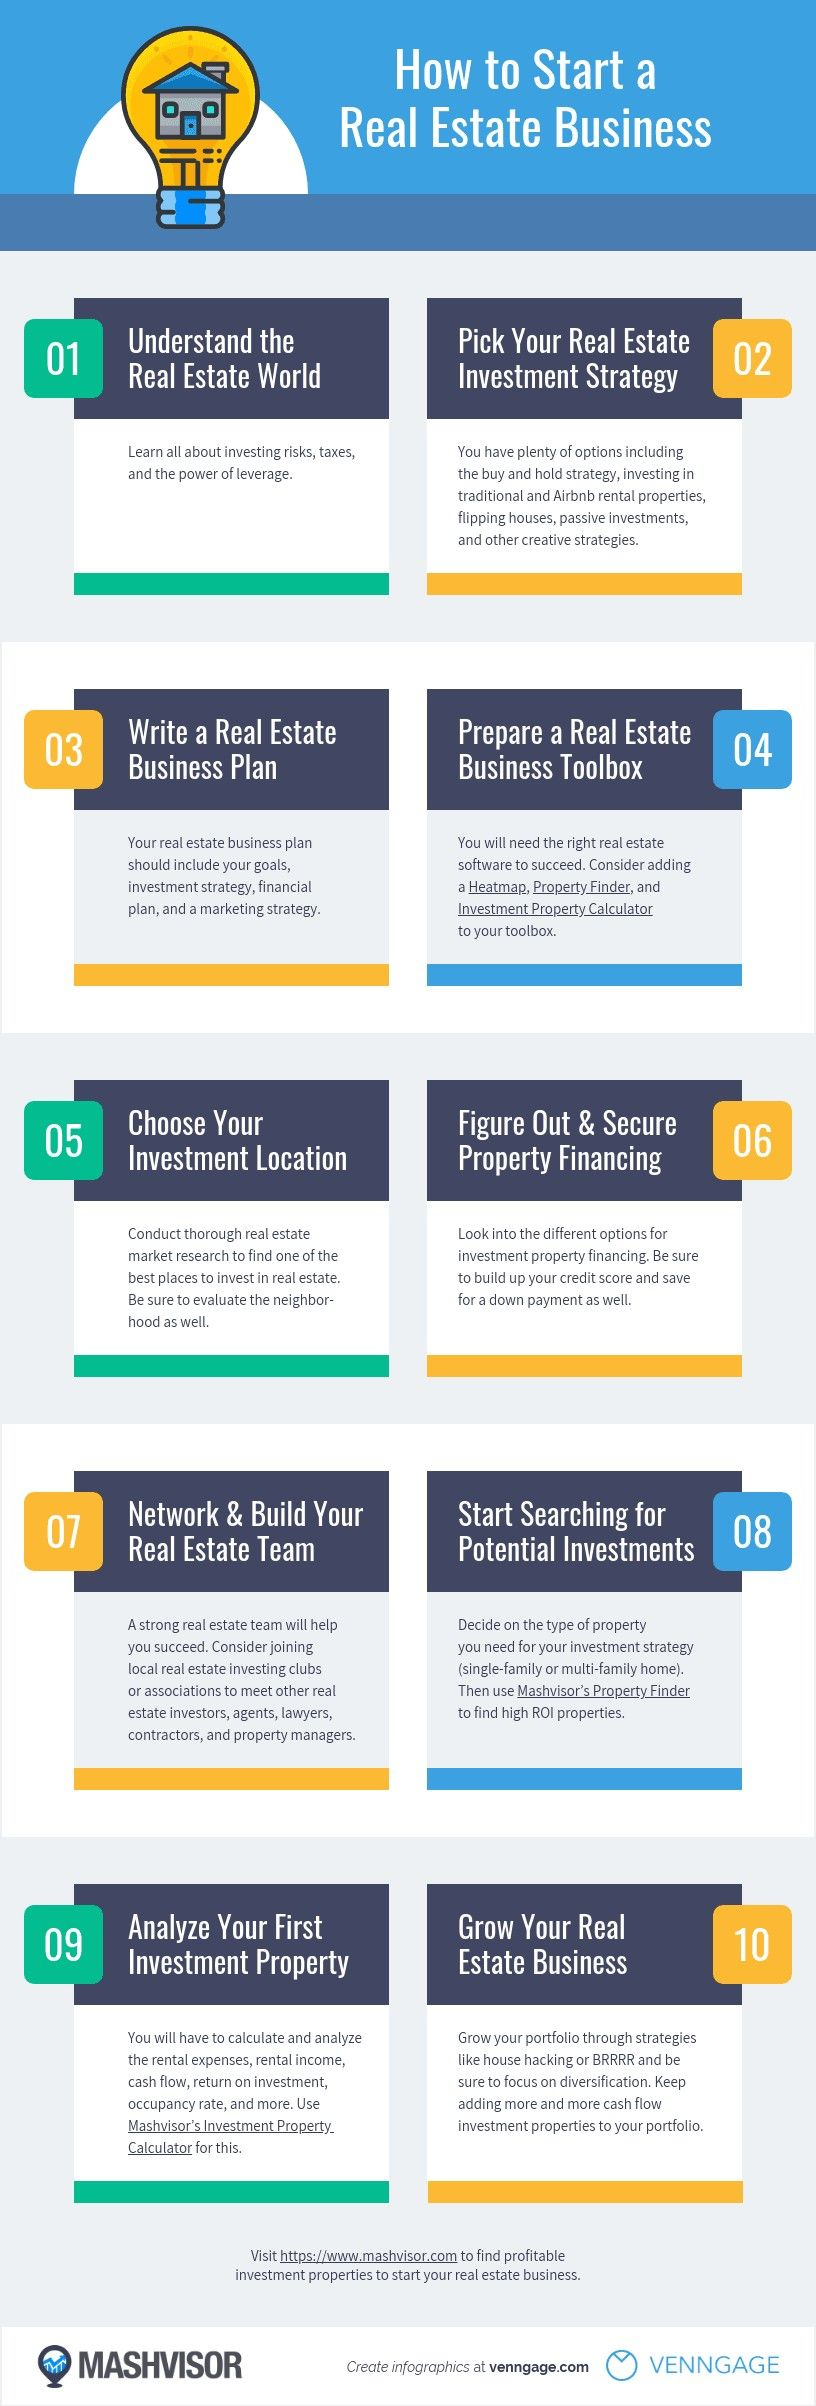 Here are the 10 steps to starting a real estate business